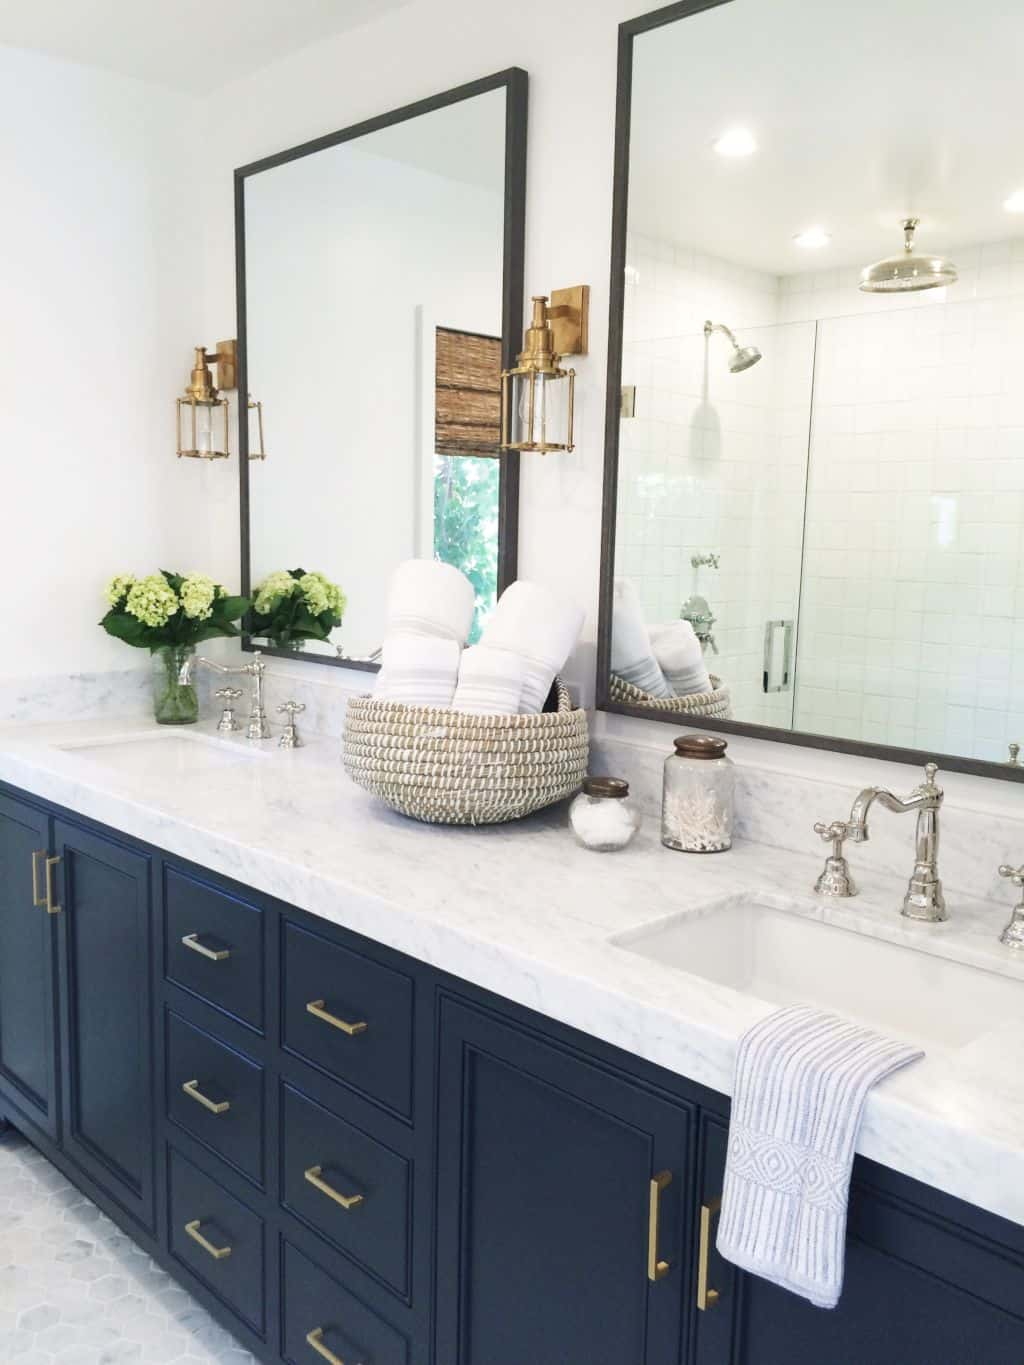 19 Double Vanity Bathrooms That Will Make Your Lives Easier Homesthetics Inspiring Ideas For Your Home